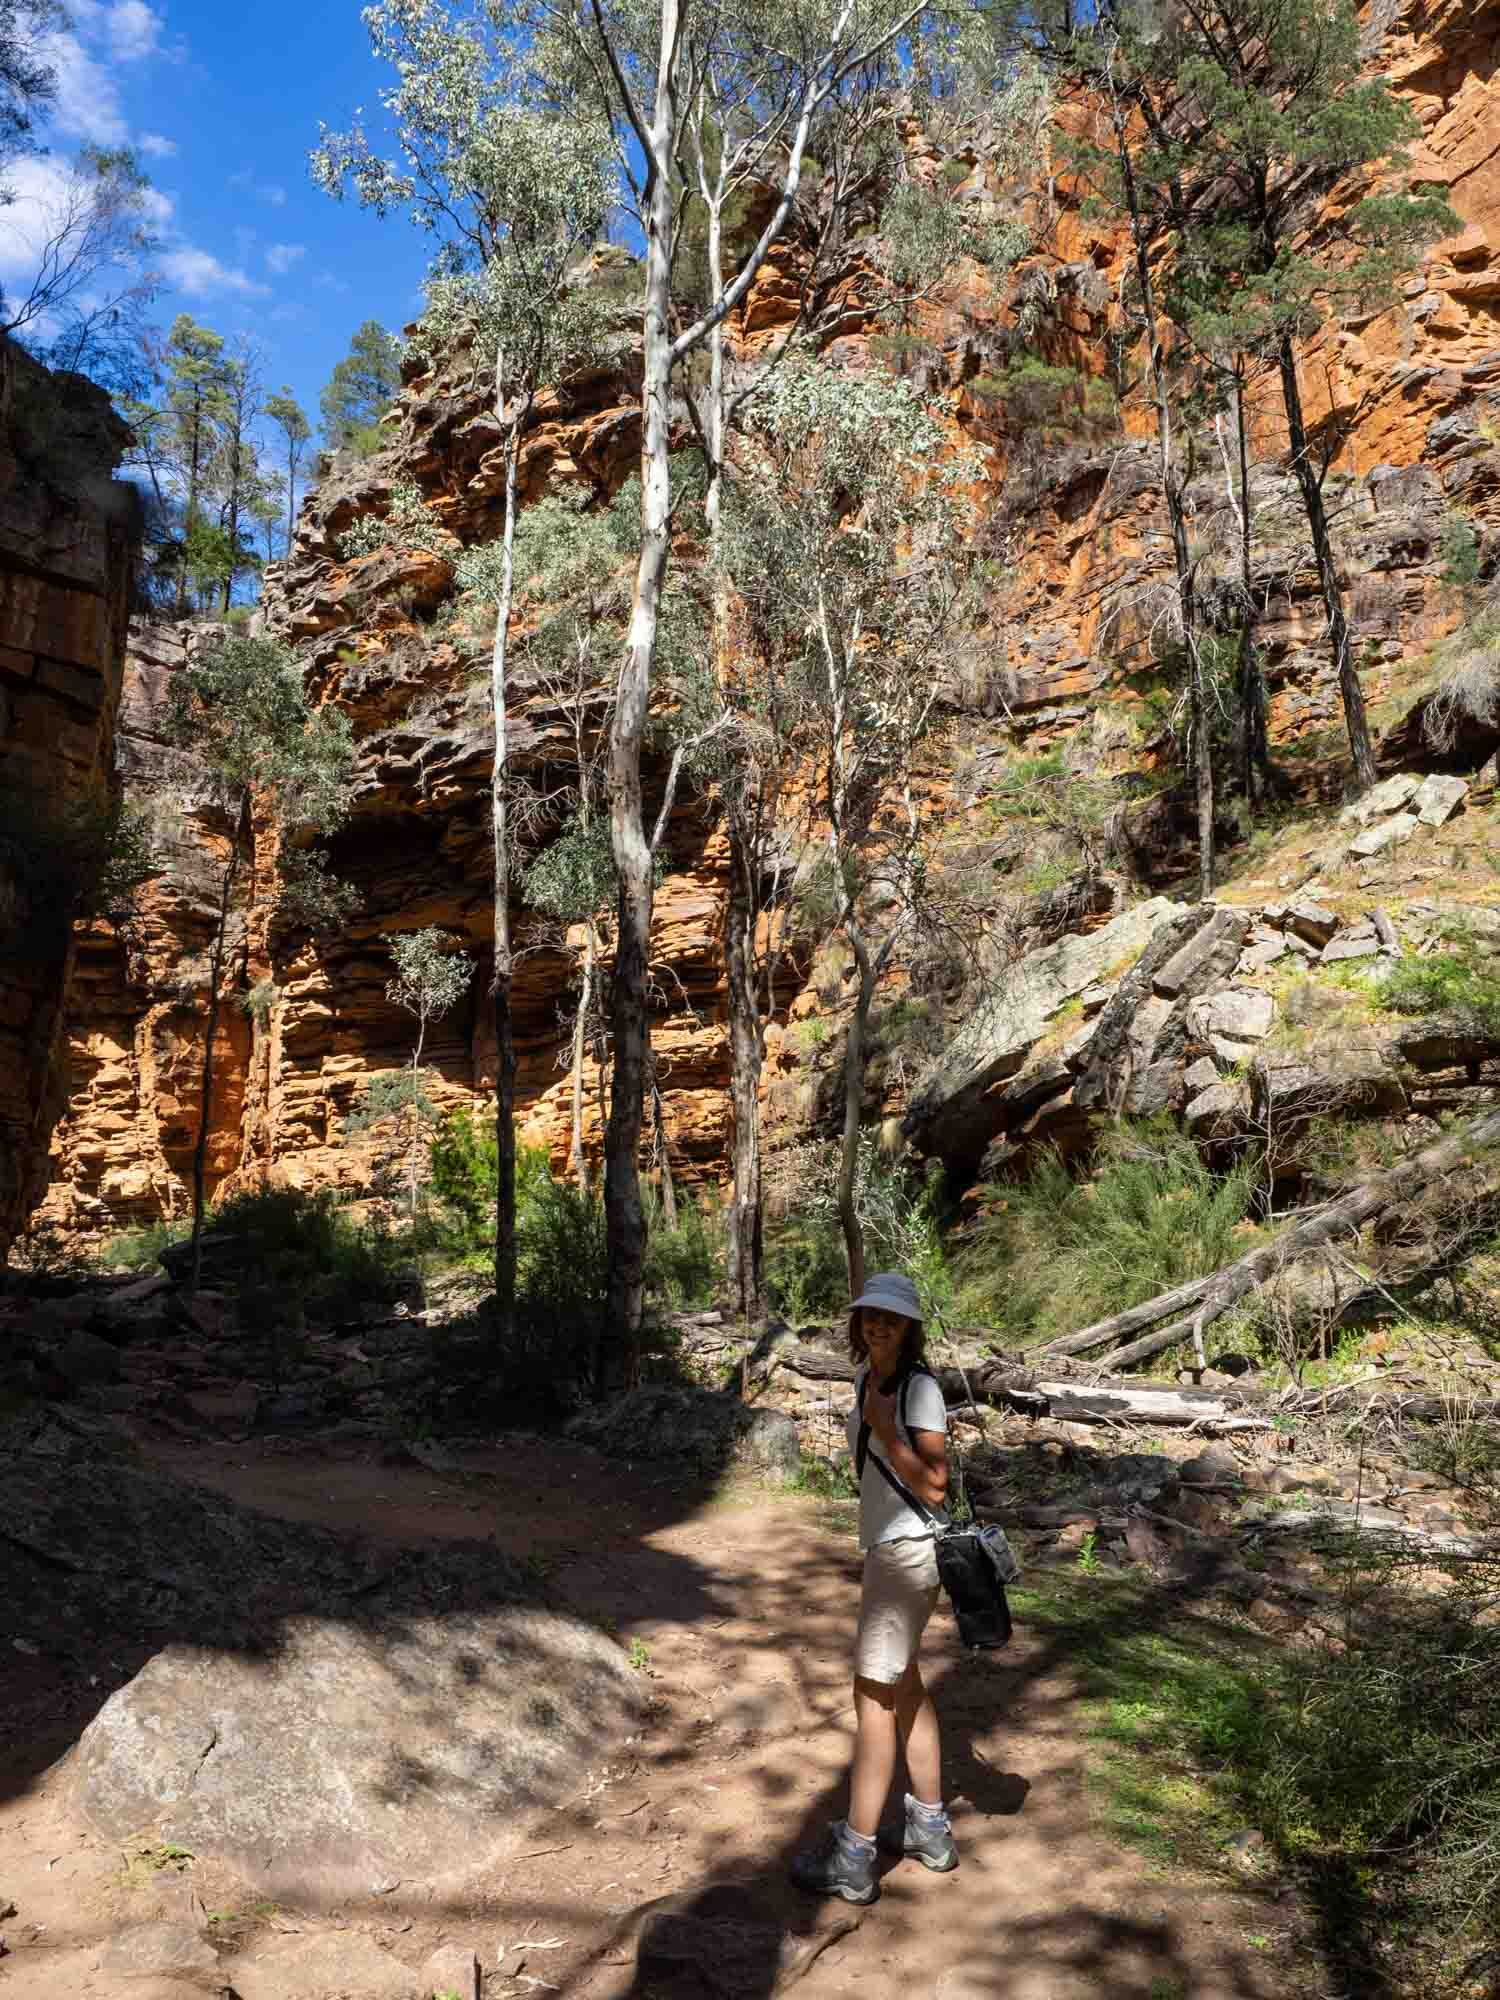 With temperatures climbing into the high 30s, the gorge was a cool retreat